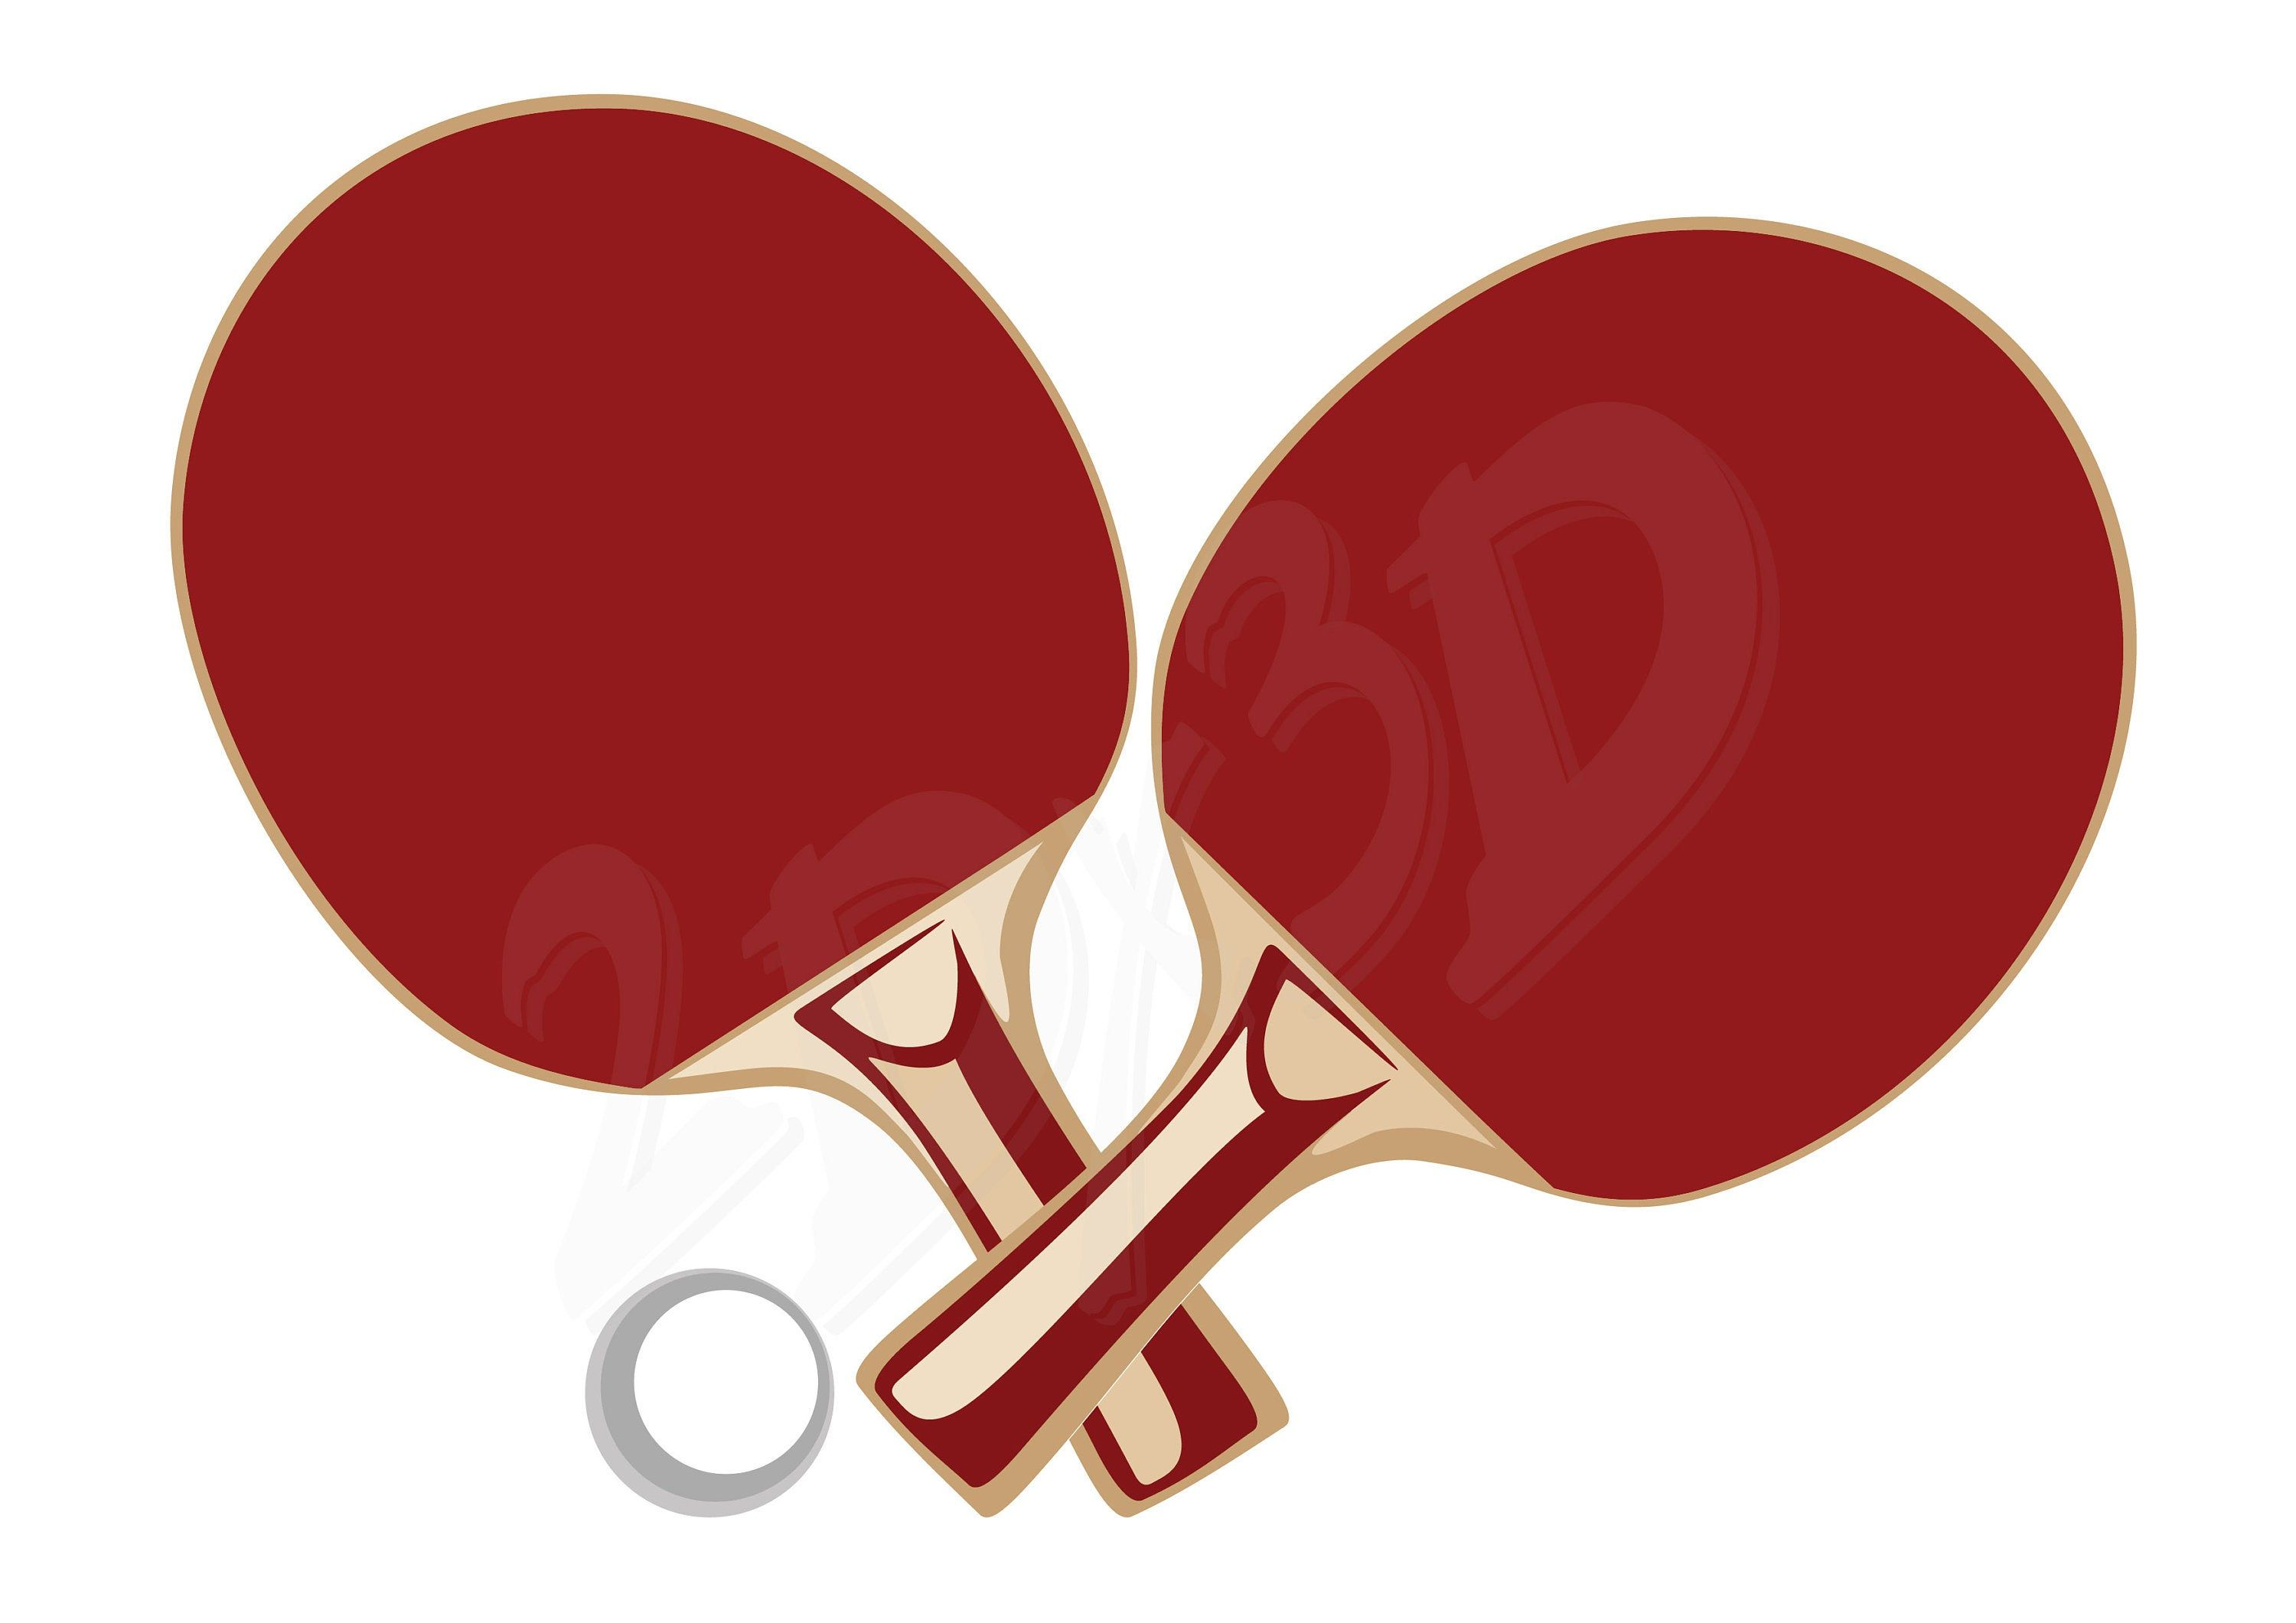 Vector Ping Pong Table Tennis Svg Ai Eps Png Pdf Jpg Etsy In 2020 Coupon Design Ping Pong Table Tennis